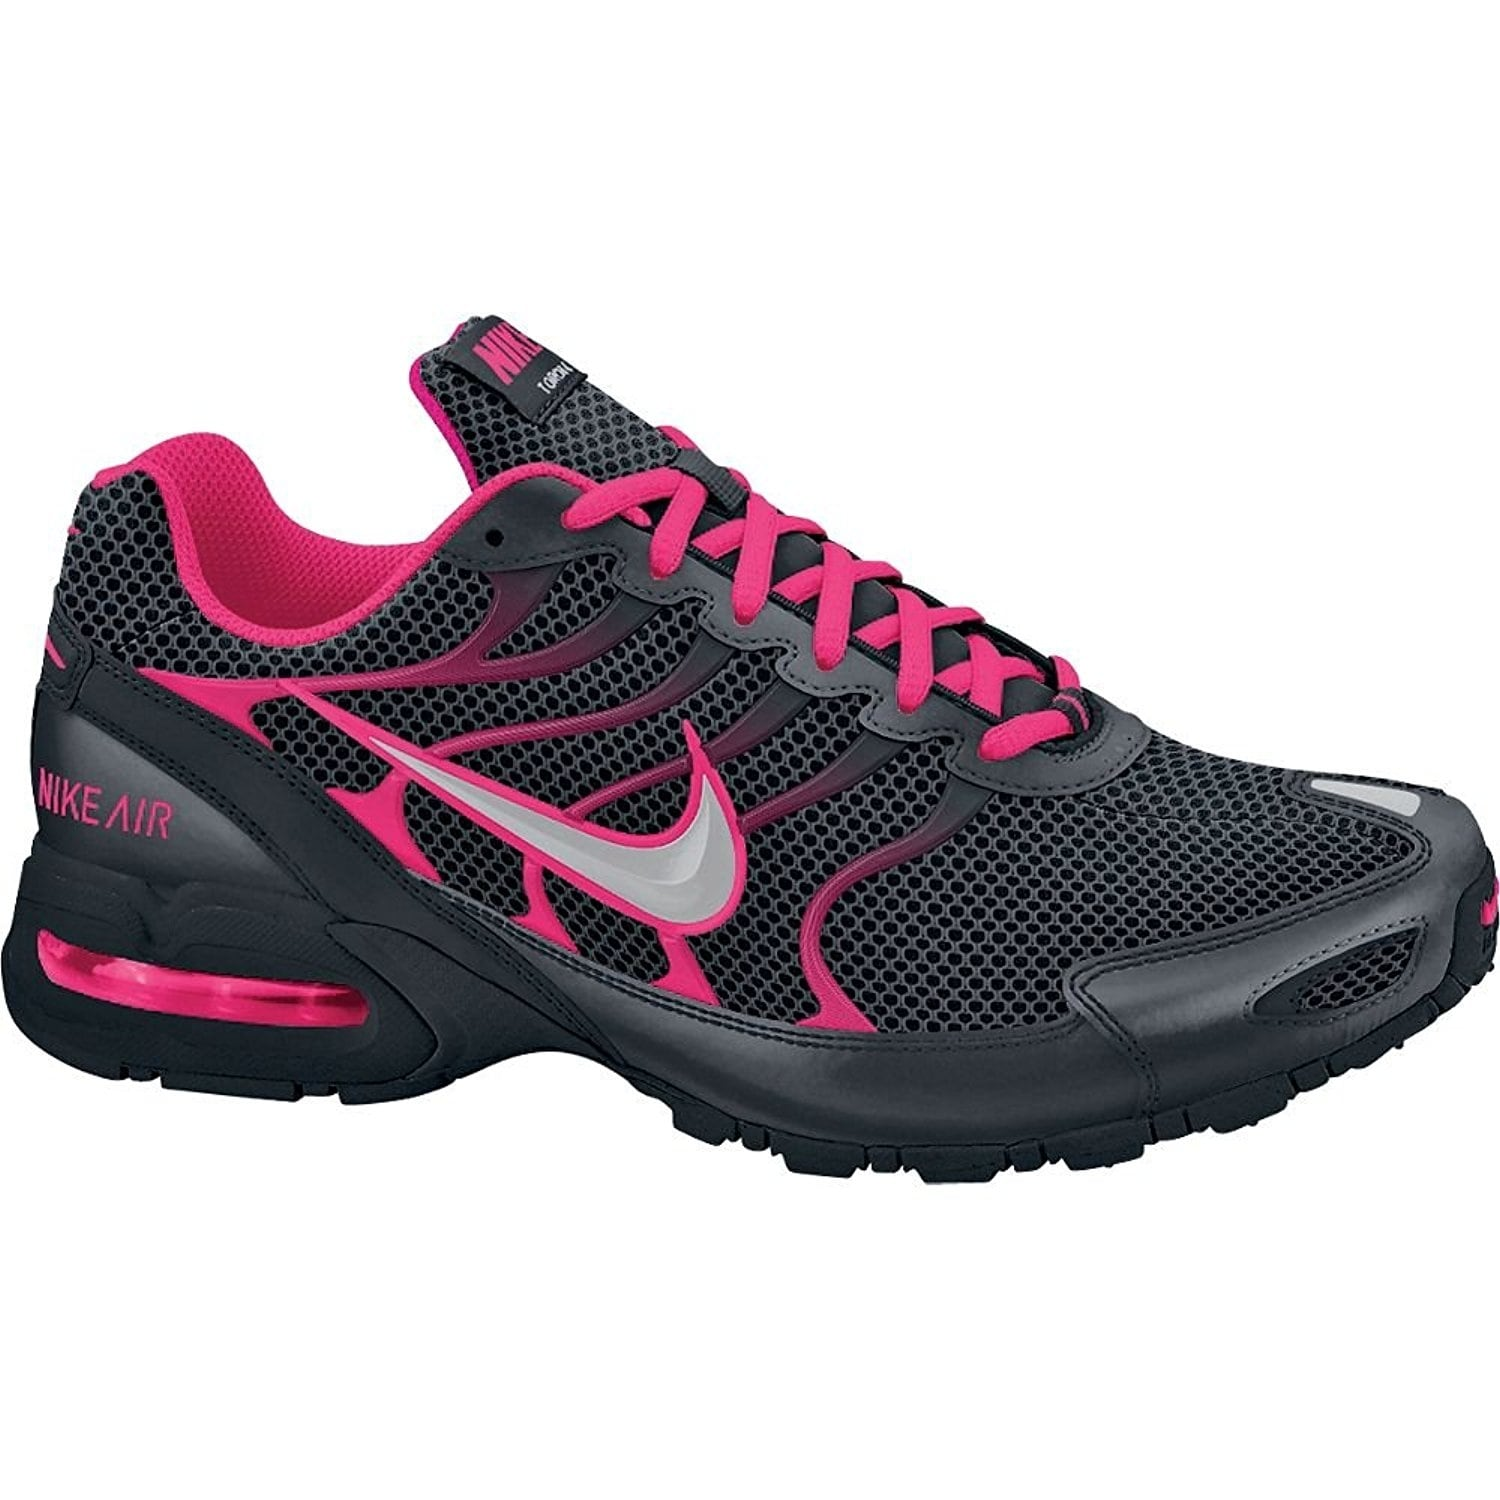 2191600129e Shop Nike Air Max Torch 4 Women s Running Shoes - Free Shipping Today -  Overstock - 17949961